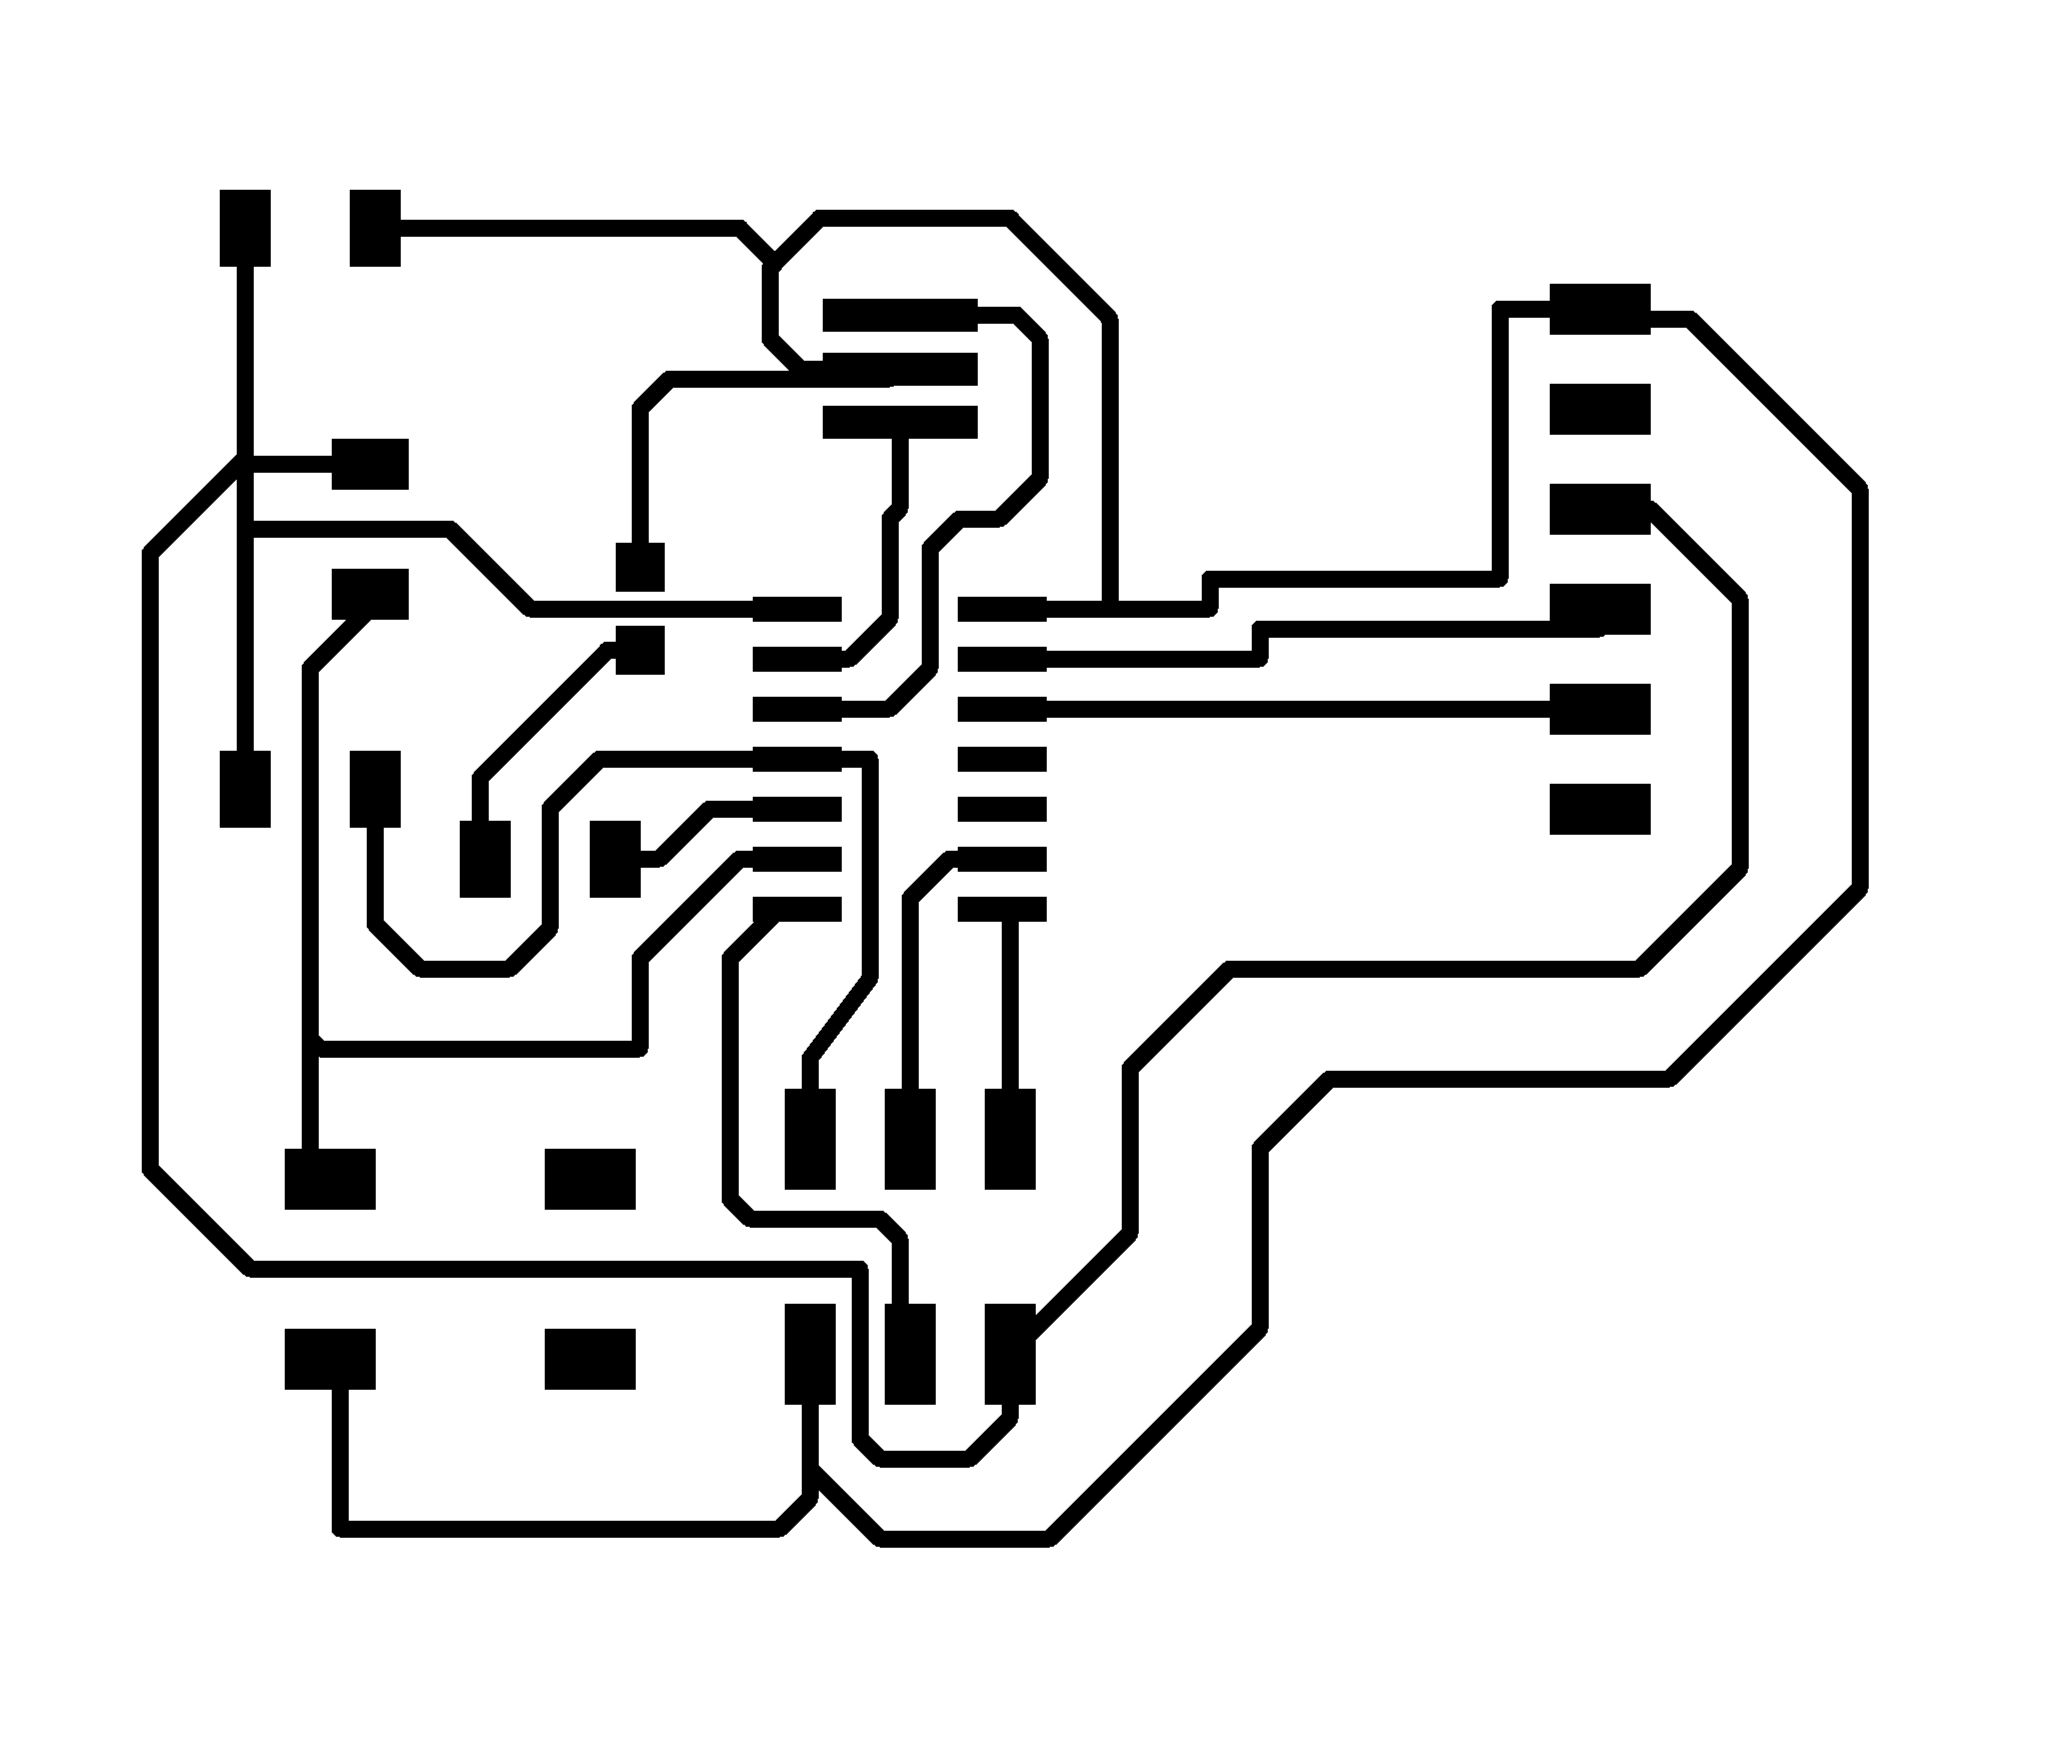 Exercise06